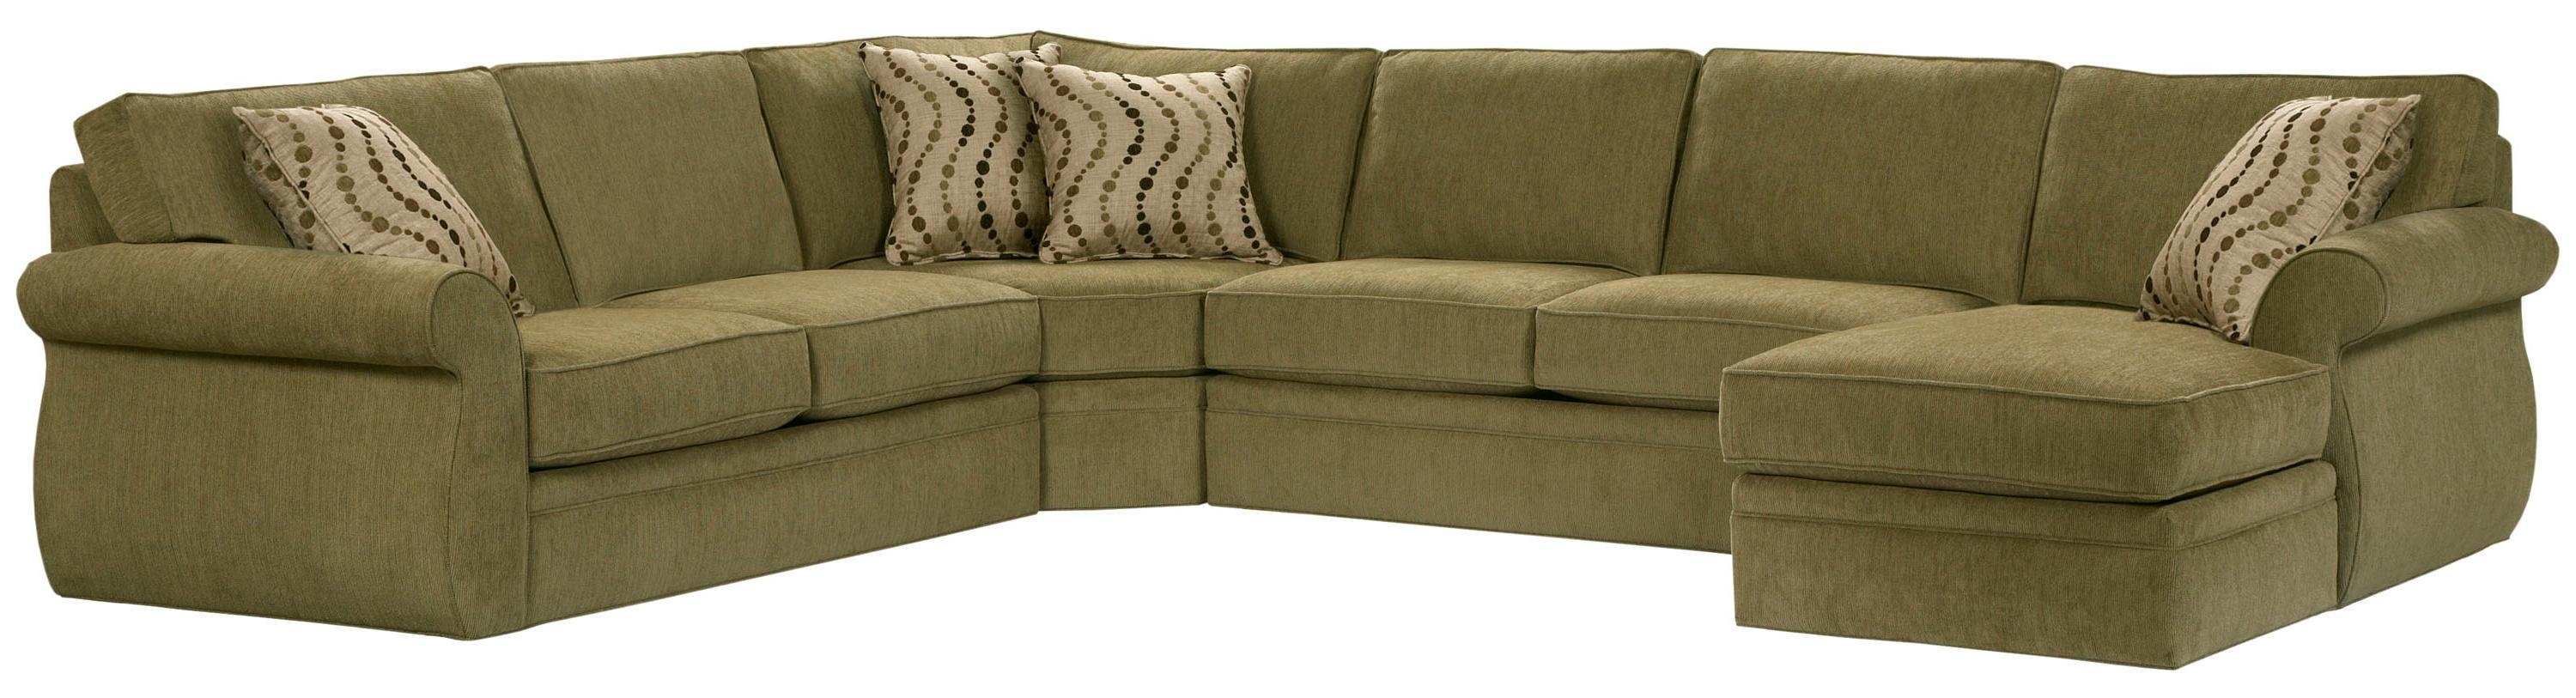 Broyhill Furniture Veronica Right Arm Facing Customizable Chaise Inside Broyhill Sectional Sofas (View 6 of 15)